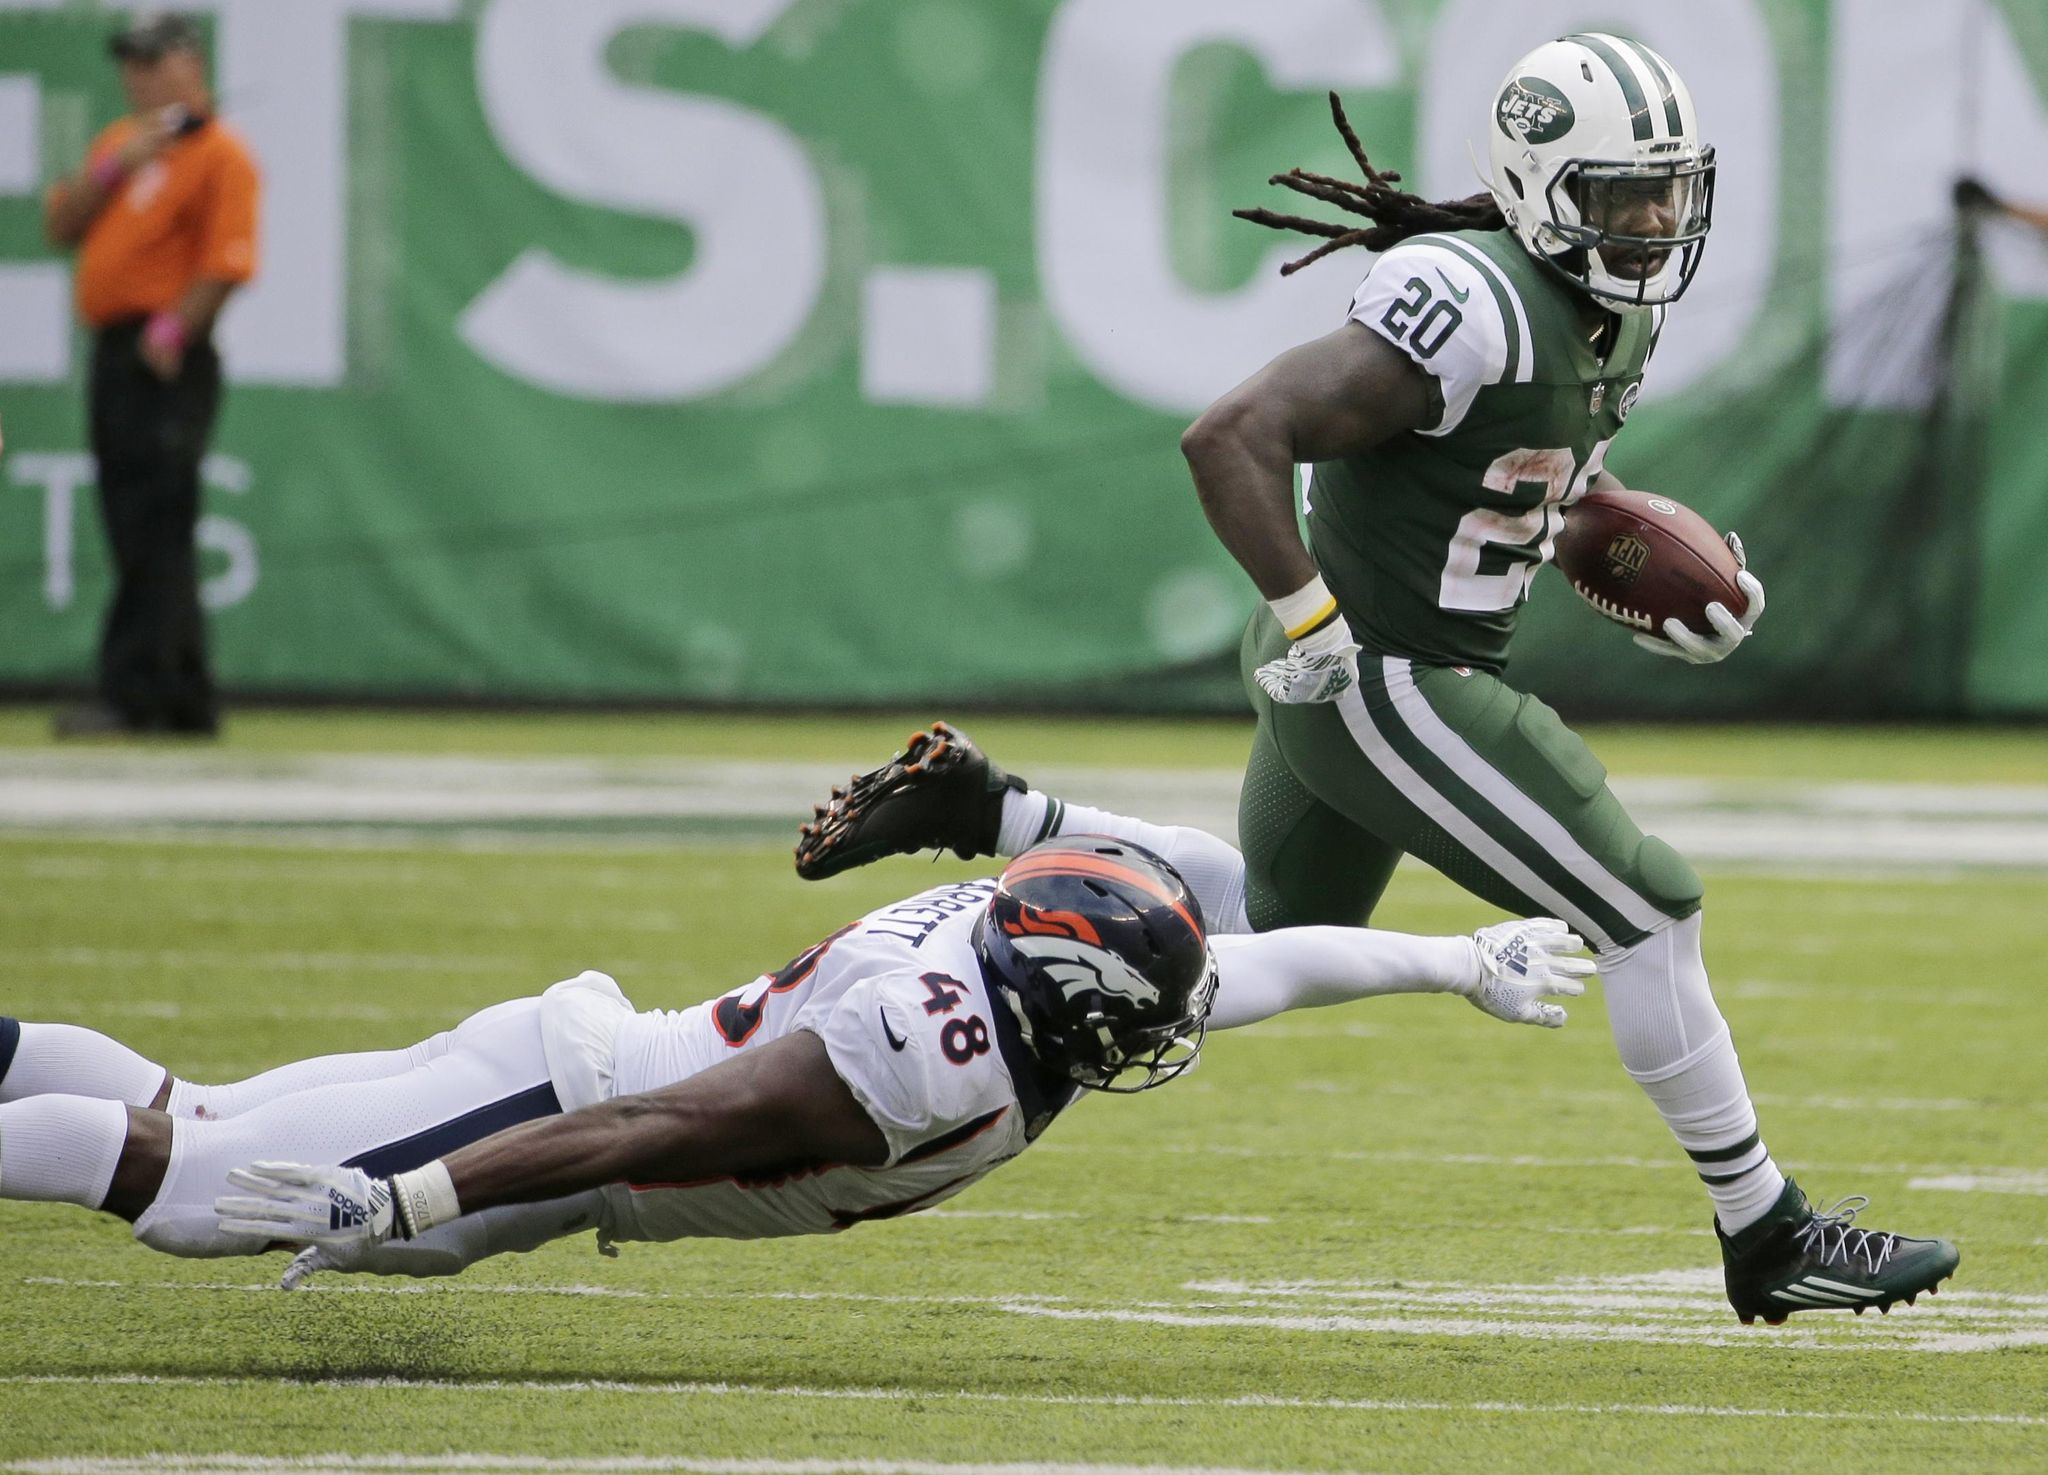 Broncos_jets_football_61432_s2048x1475